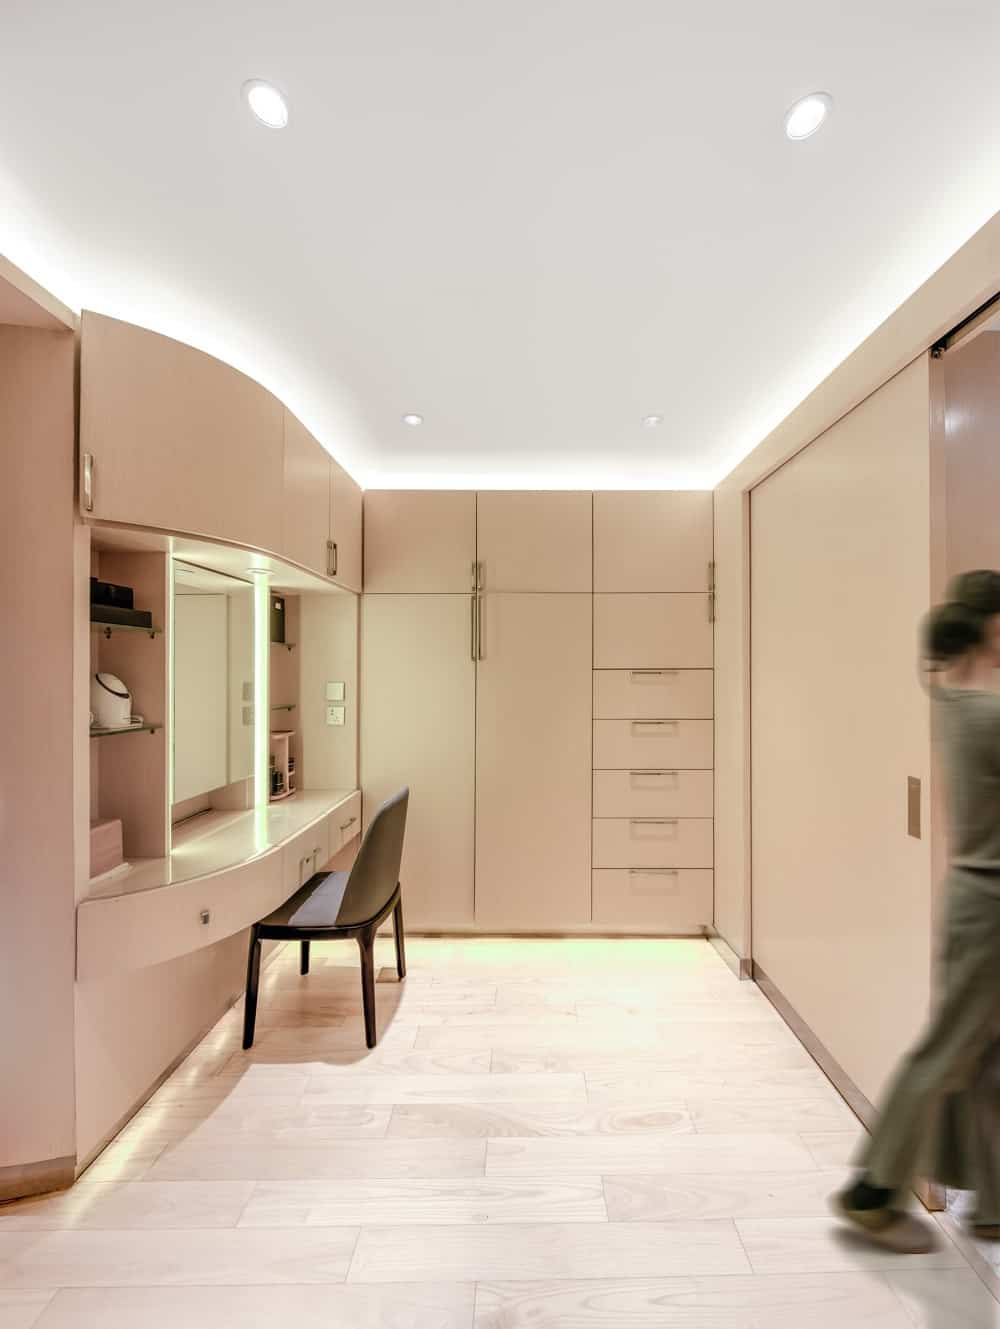 Walk-in closet in the Home Space with Two Kids designed by Atelier Alter.